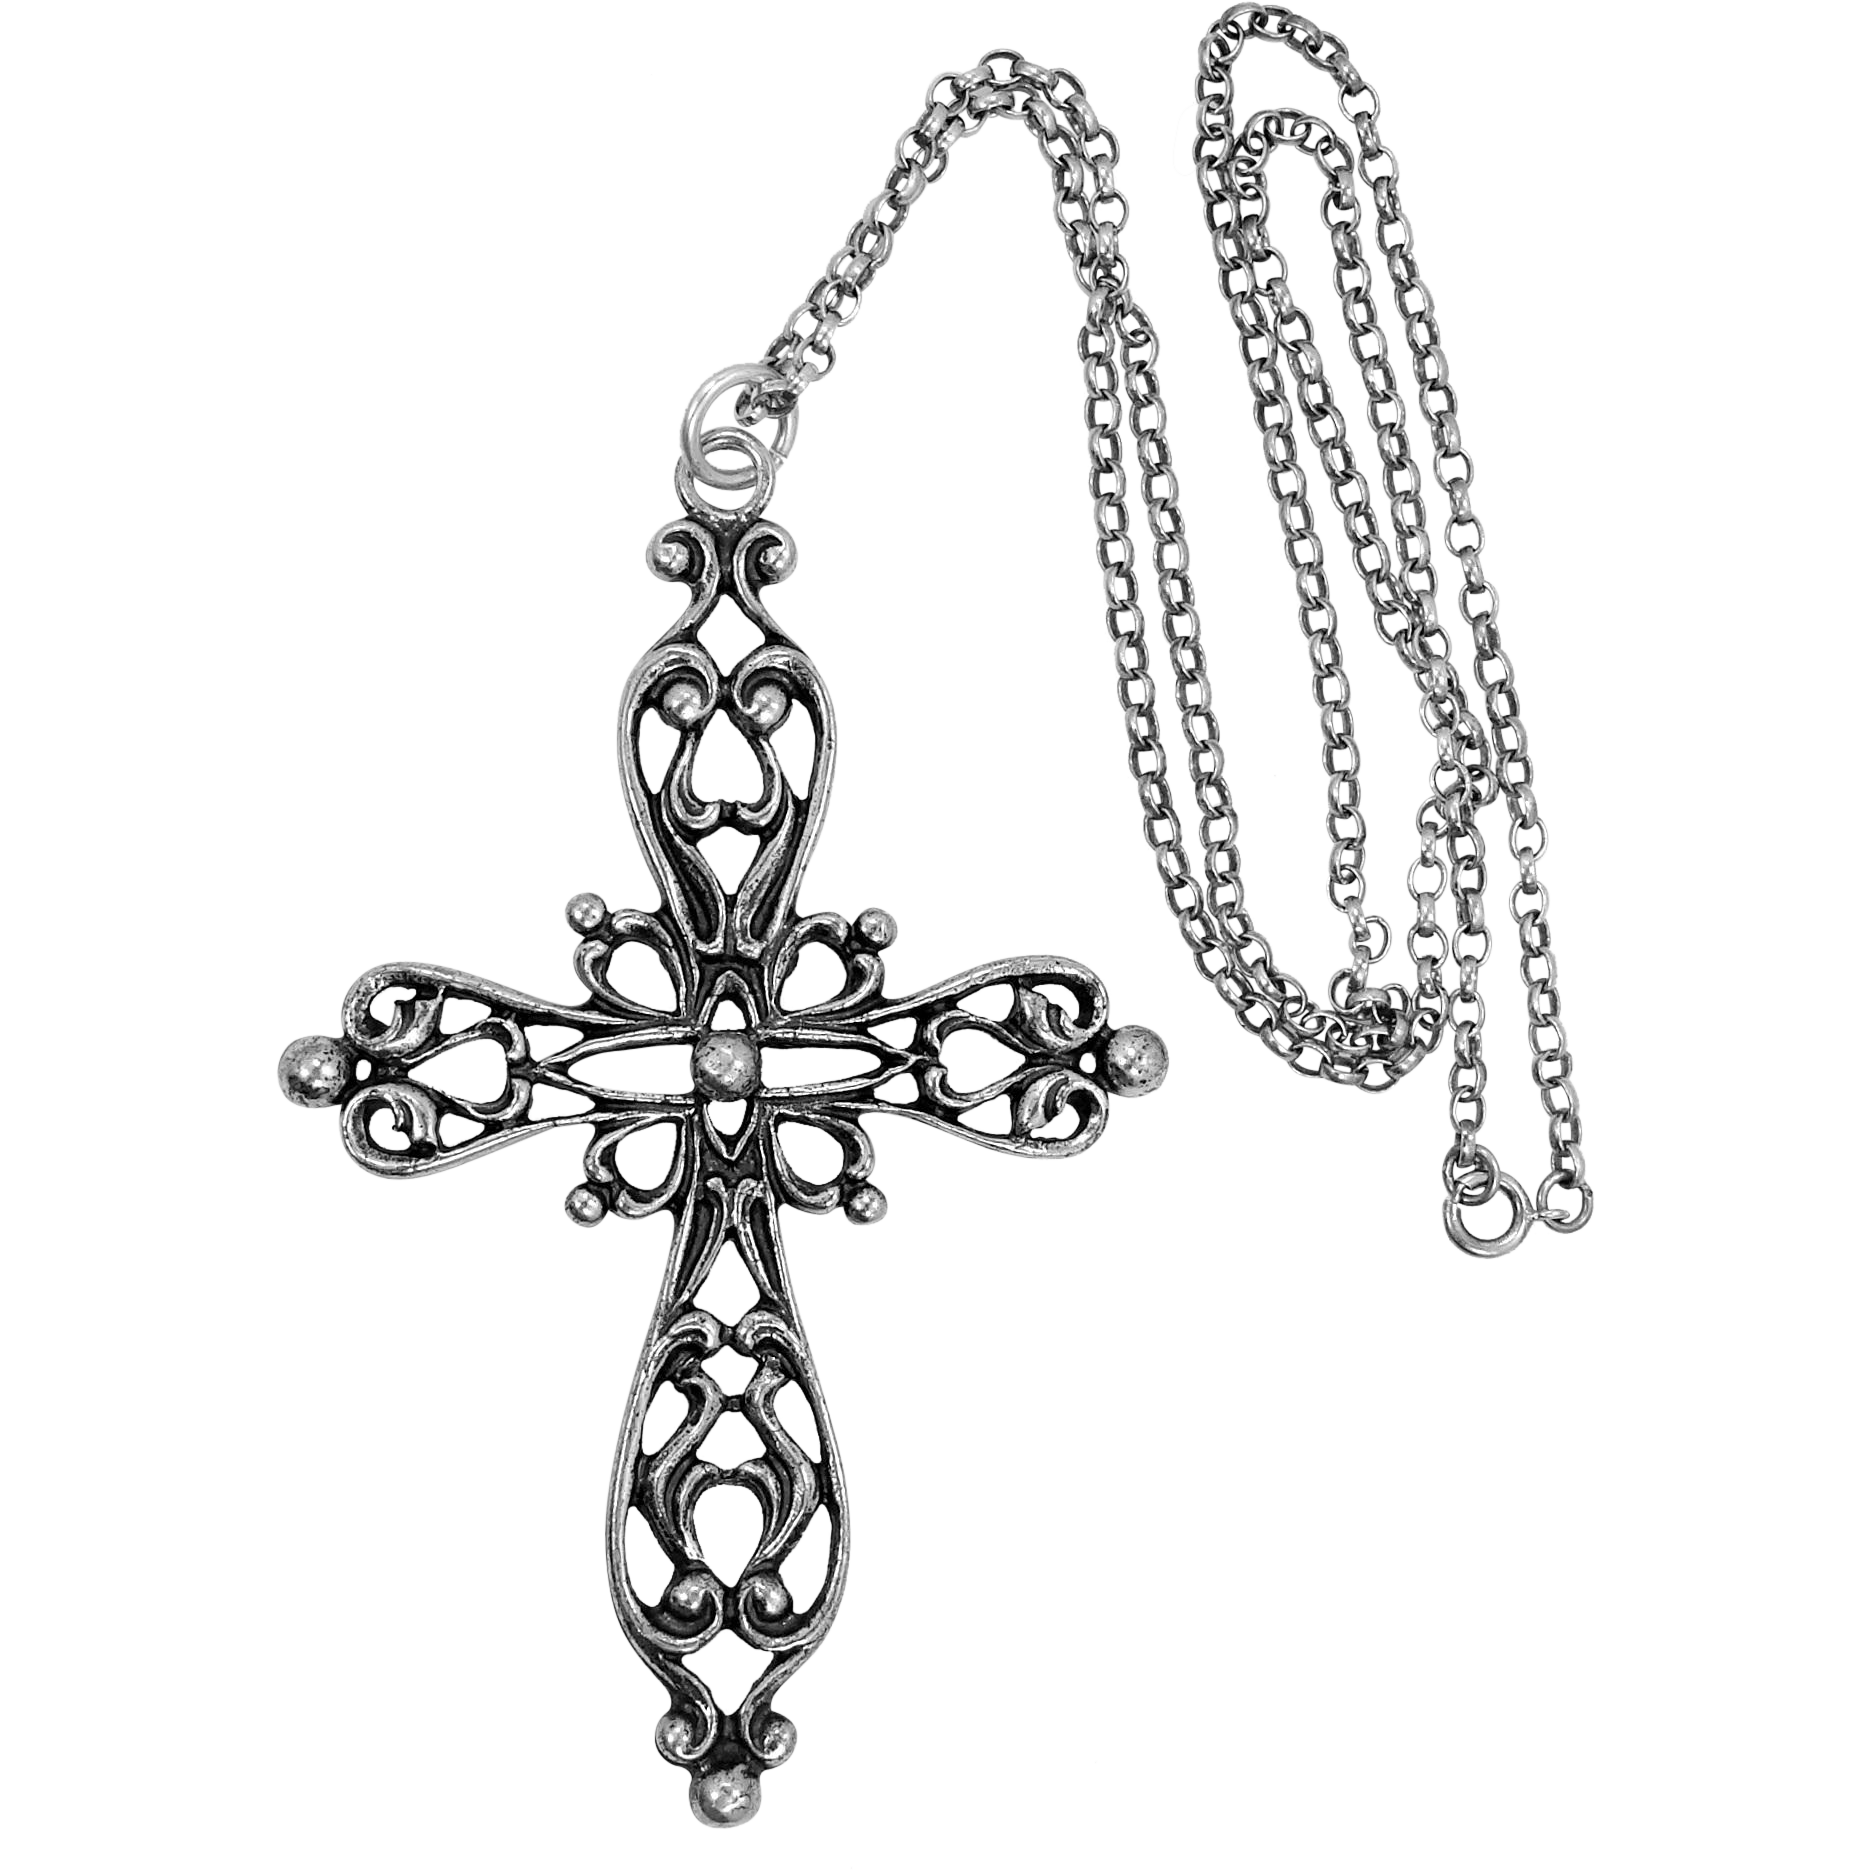 Large DANECRAFT Sterling Silver Filigree Cross Necklace